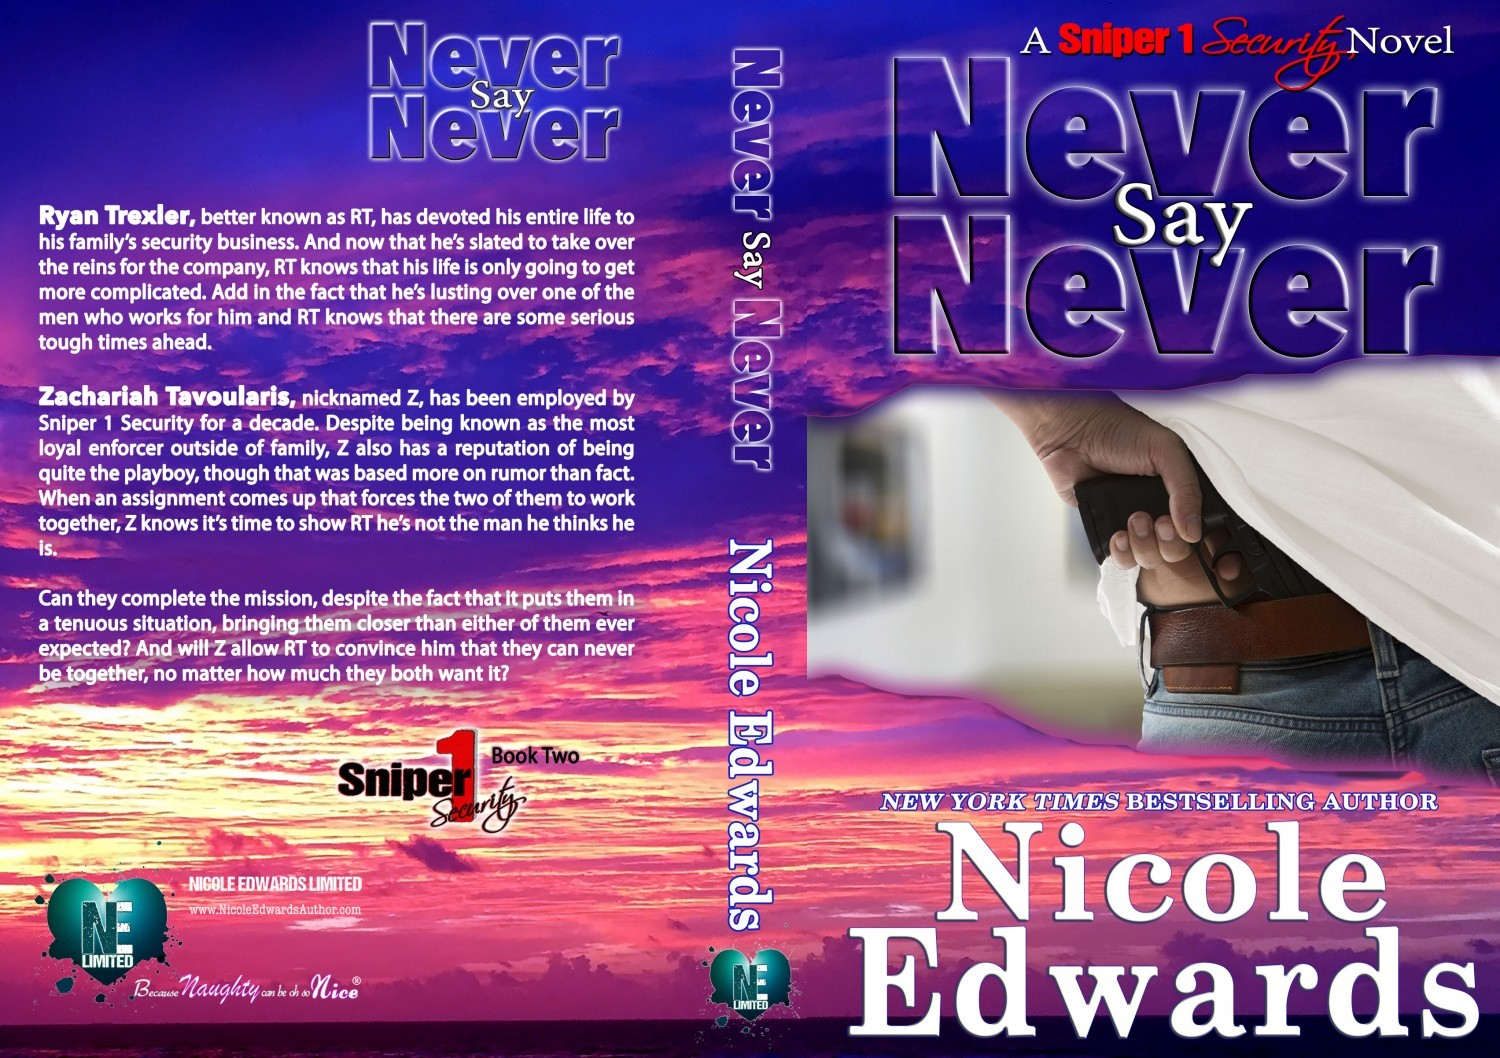 S1S-2-NEVER-SAY-NEVER-Full-1500x1058